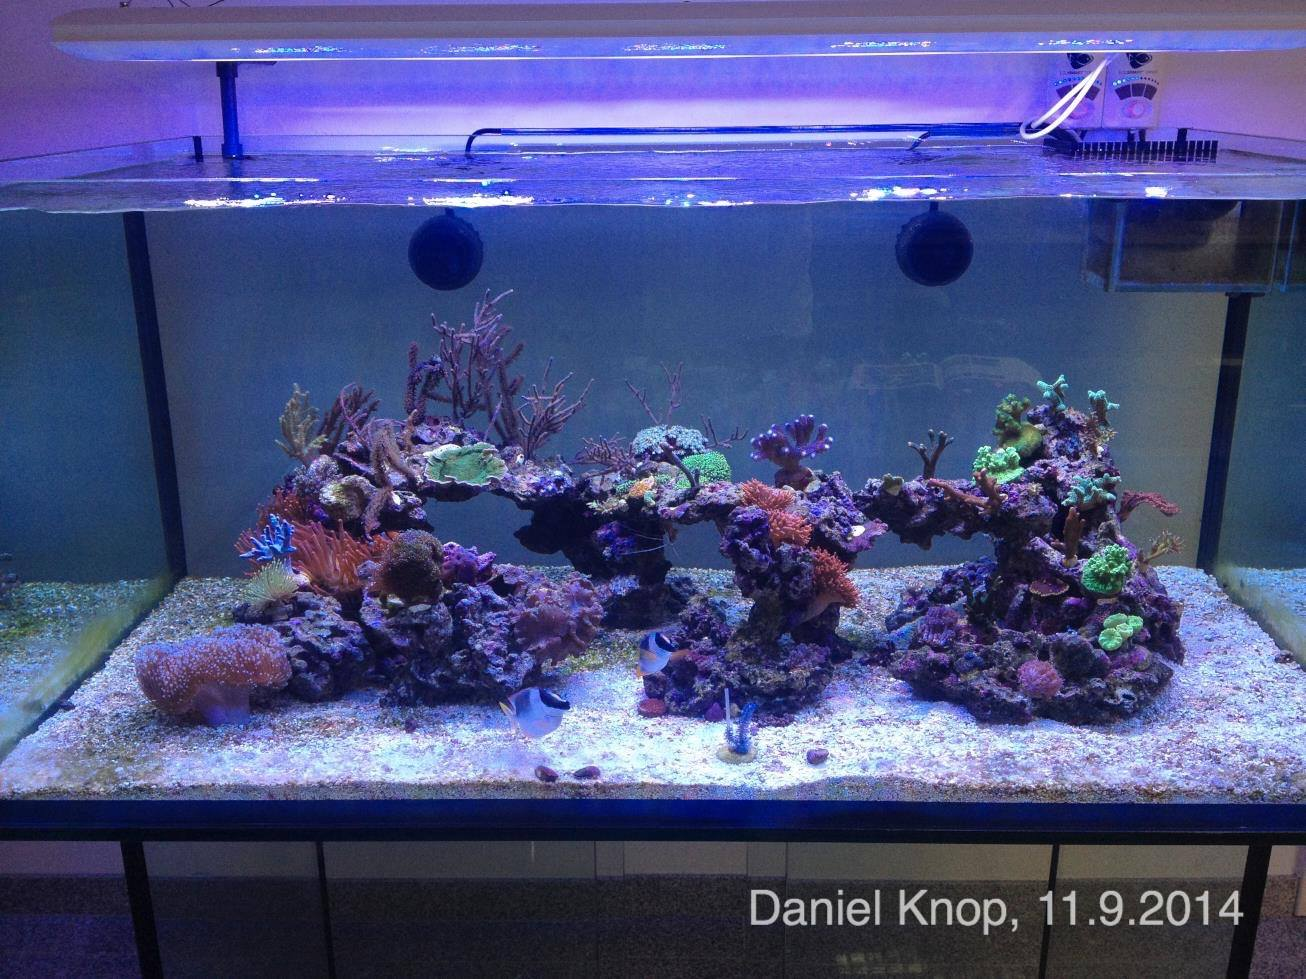 Knop's latest reef aquarium, situated in his office, as photographed September 11th, 2014.